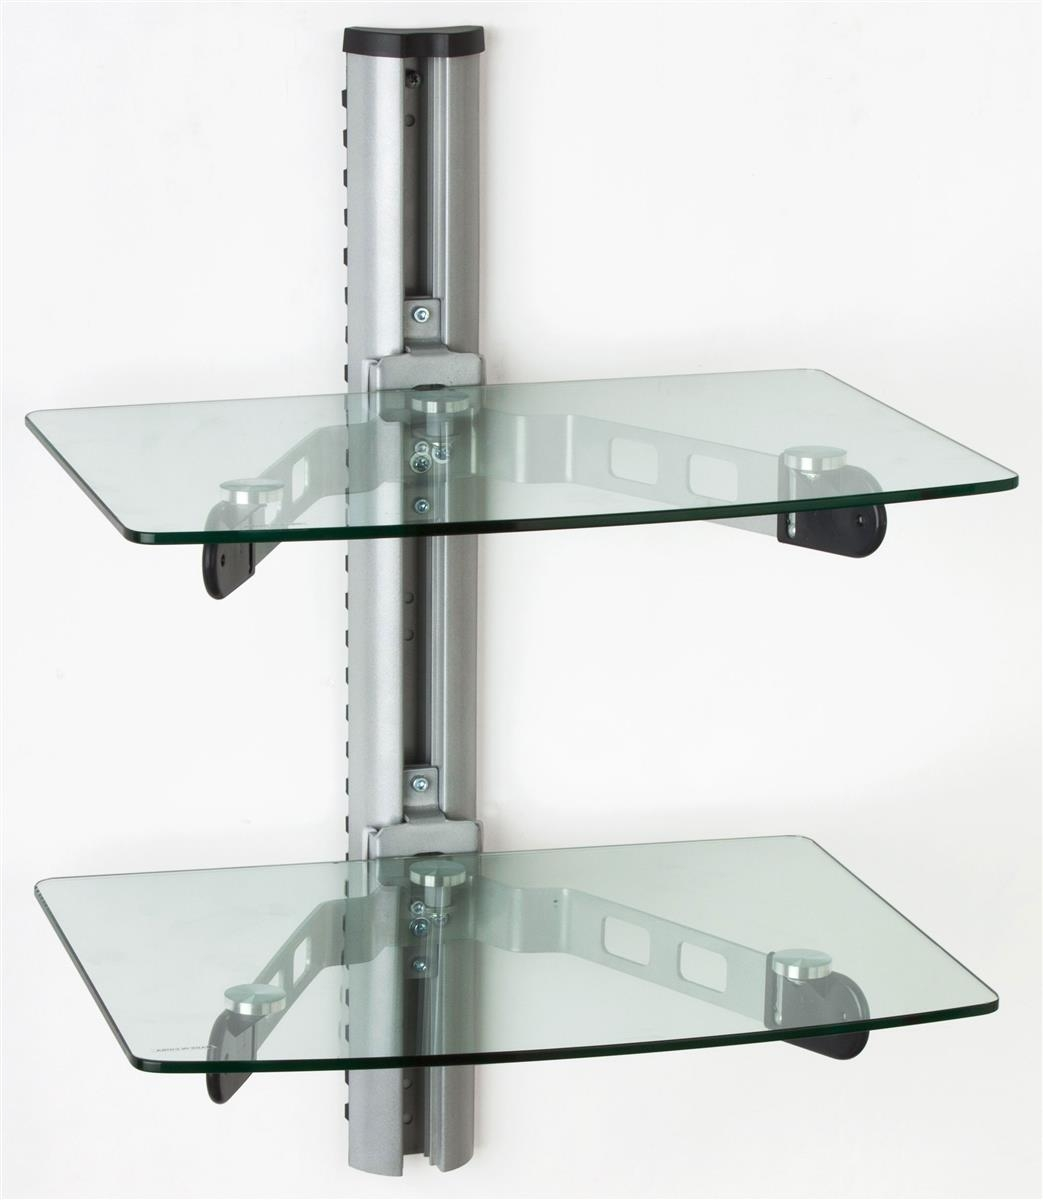 Wall Mounted Glass Shelves Av Component Stand Regarding Glass Wall Mount Shelves (#6 of 12)